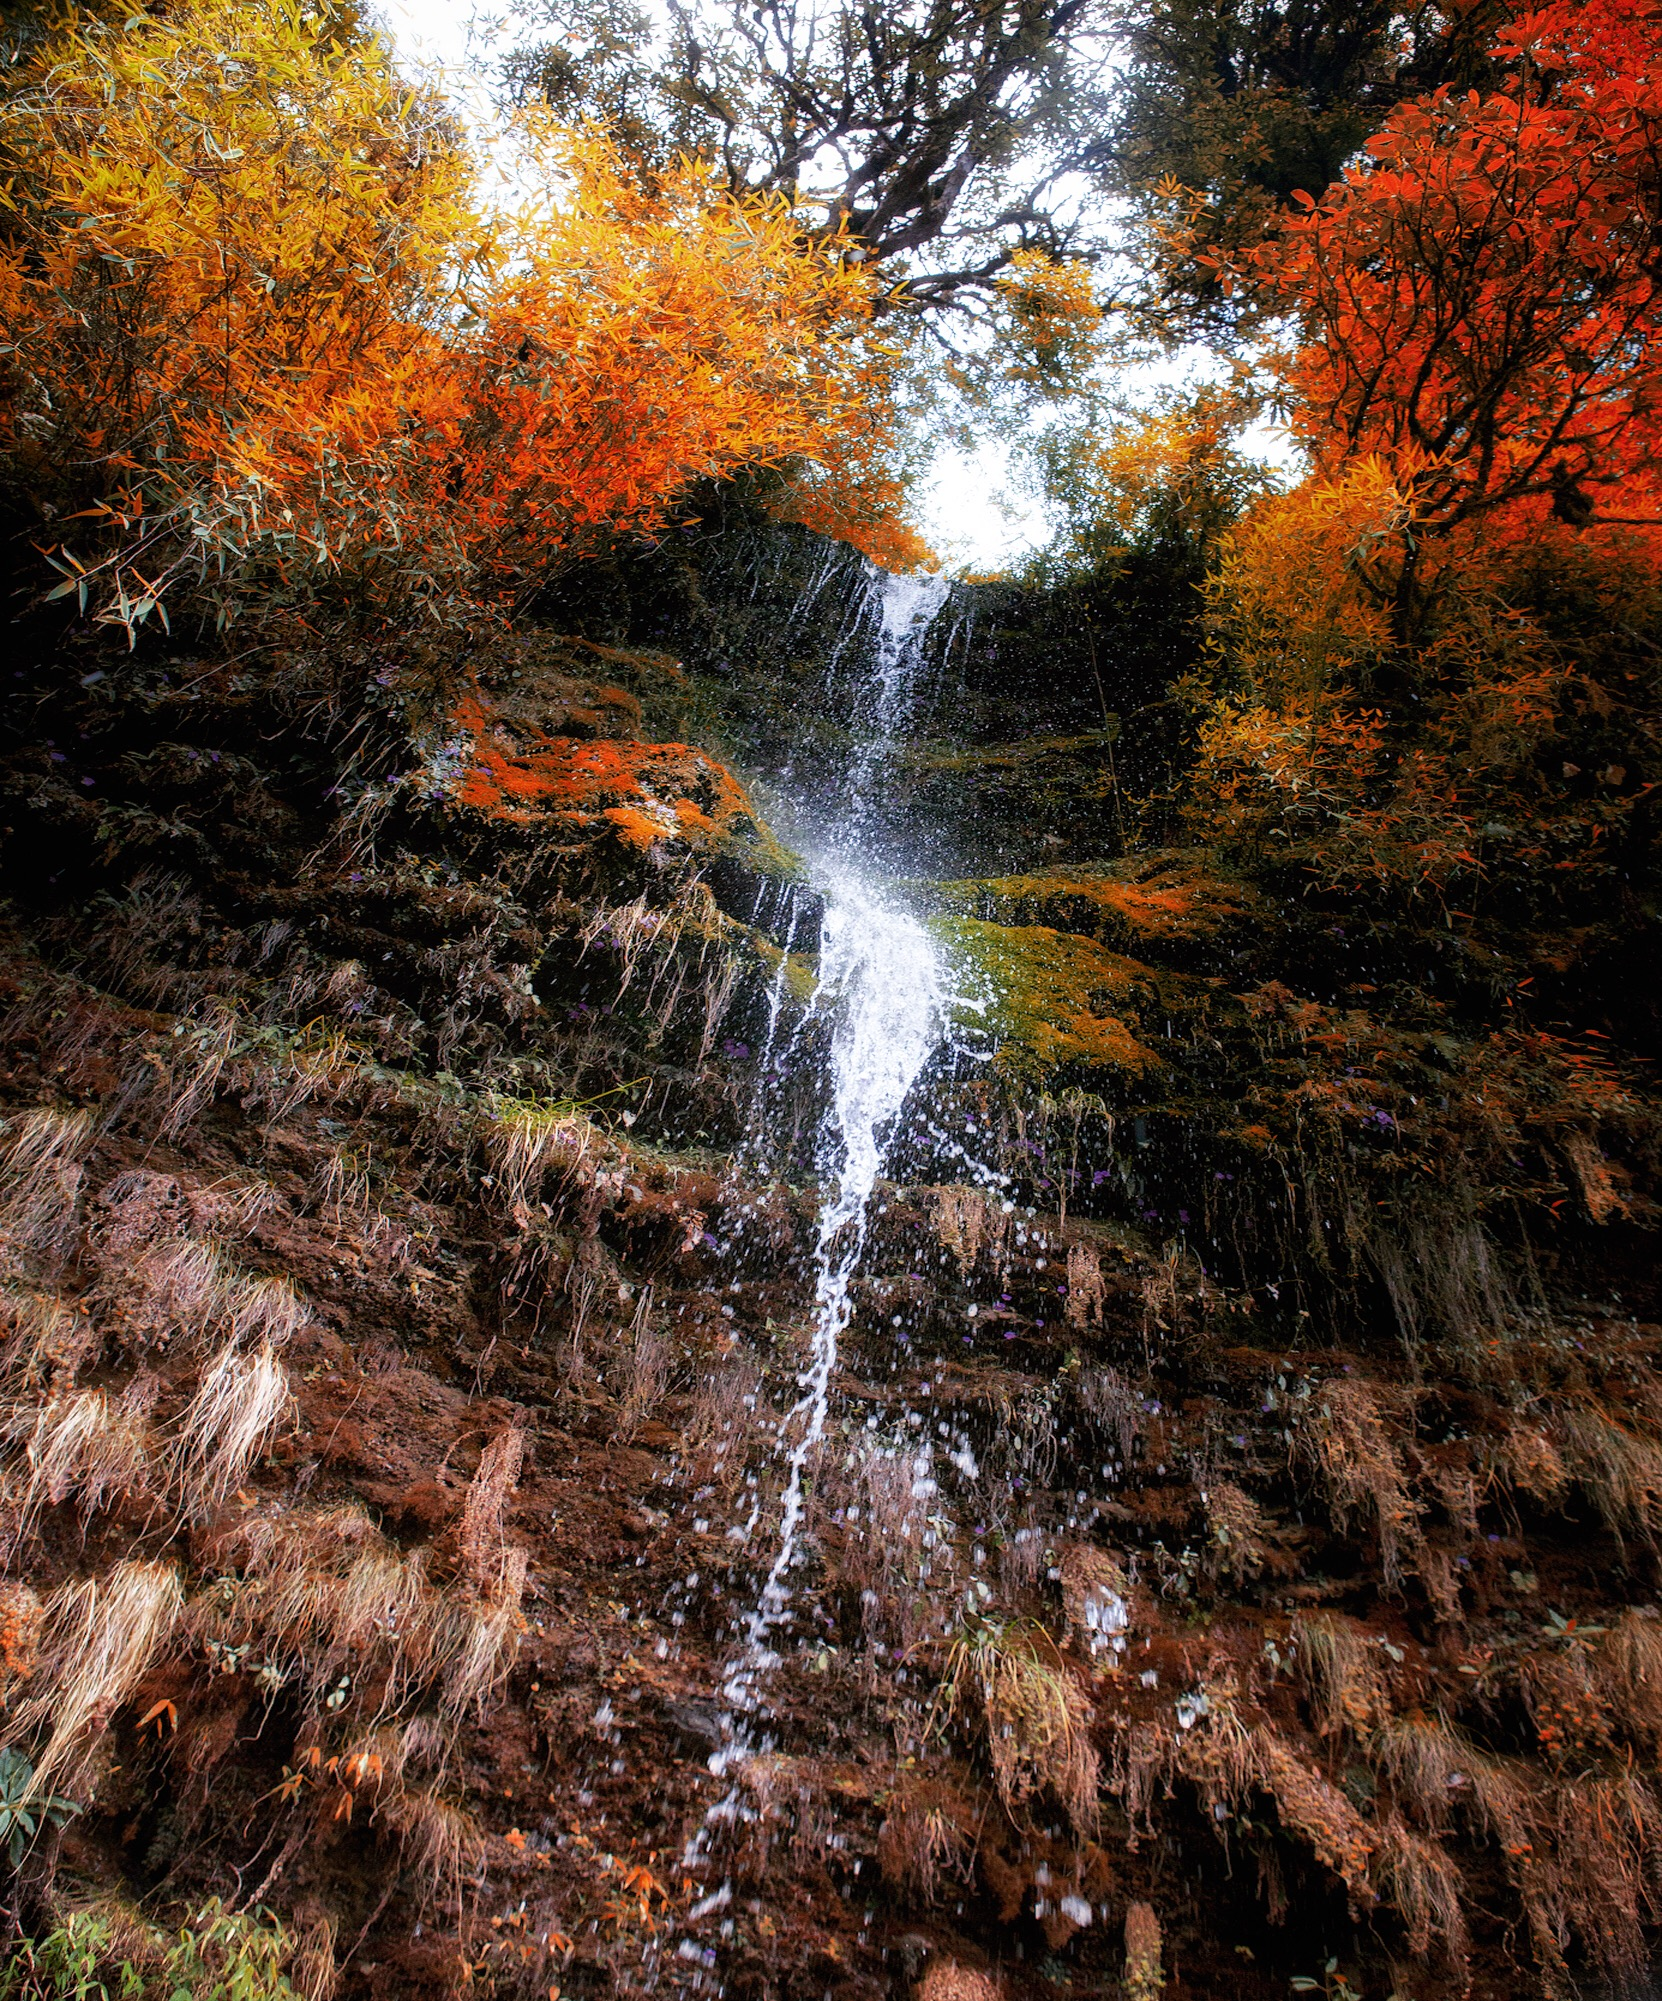 Nov 9.4, 2016   Water fell from the Rhododendron Forest. Through the Deurali Pass the hills teetered and toyed with 3,000 metres. The approach to Ben Thanti weaved against high slate with a quick stream echoing rosey sandstone and goldleaf.